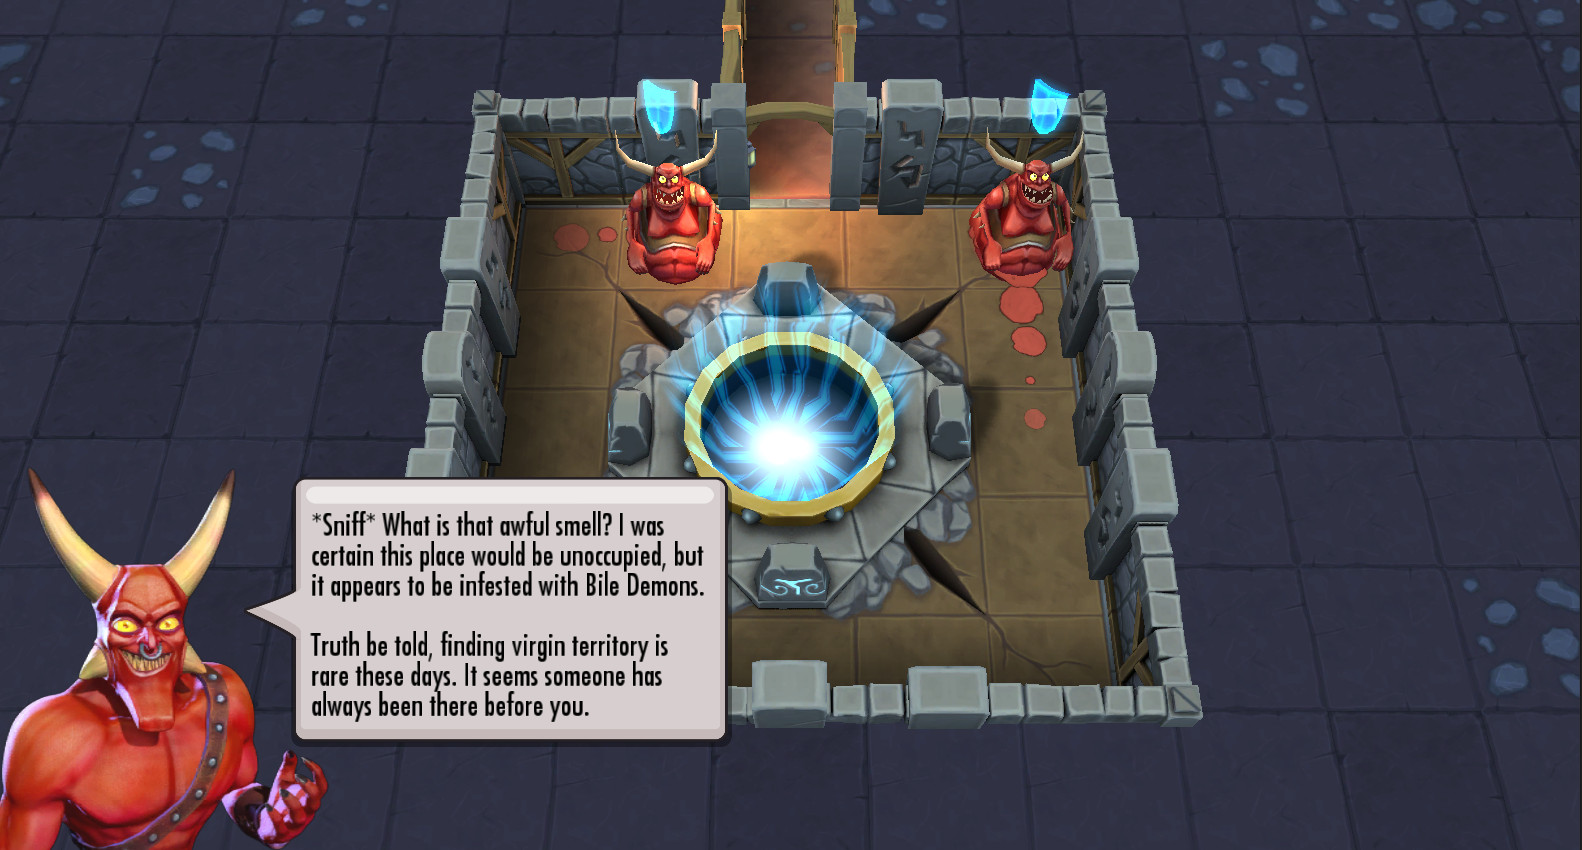 from Layne matchmaking dungeon keeper